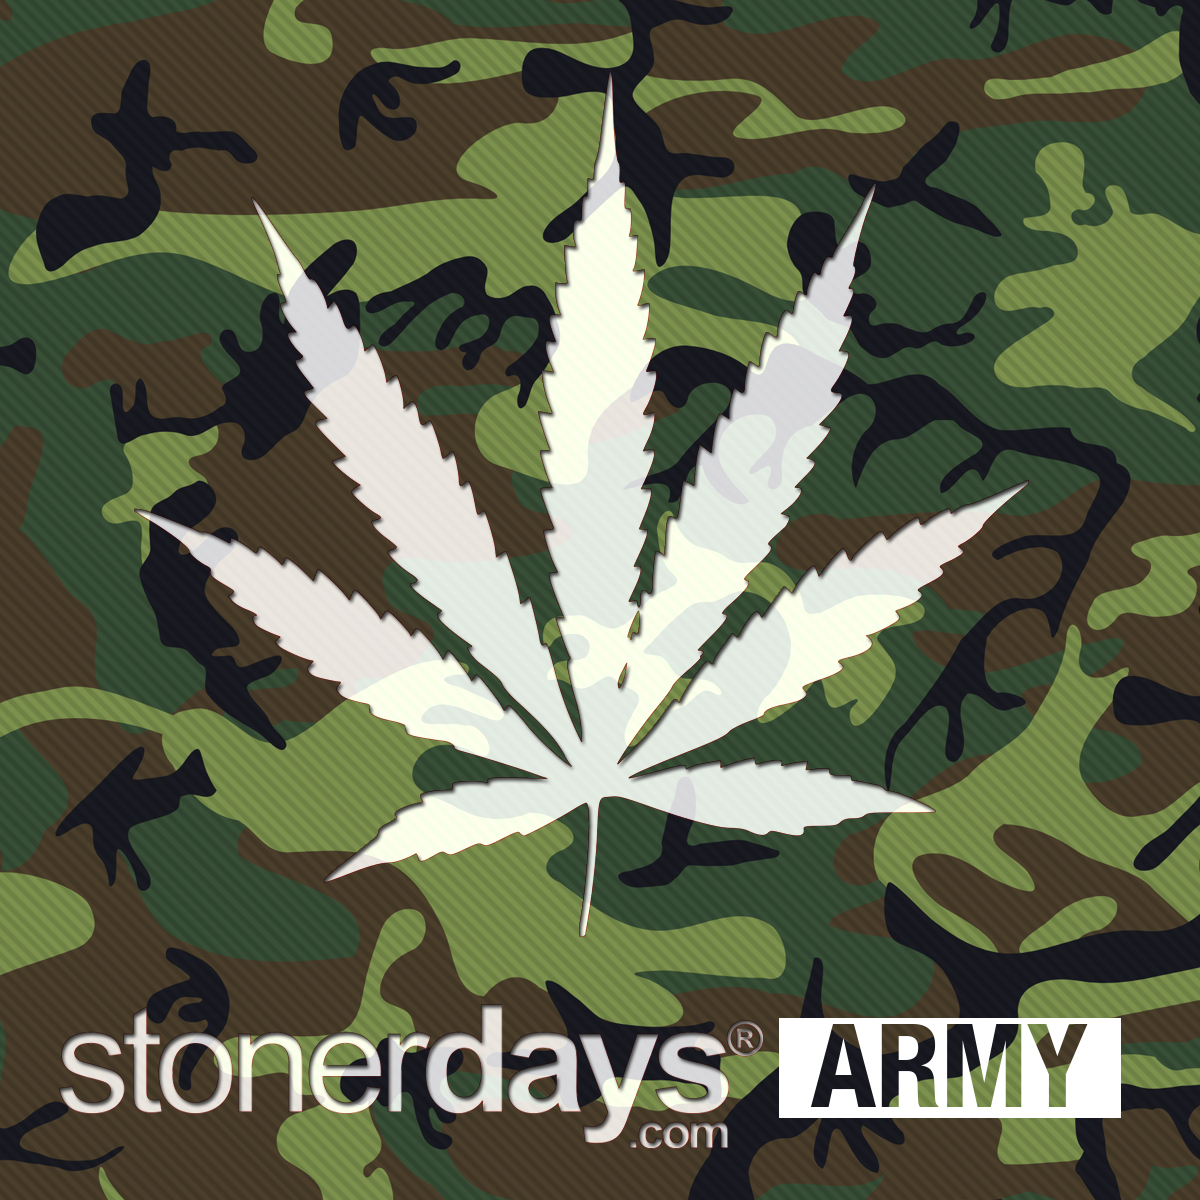 SD-LOGO-SQUARE-ARMY